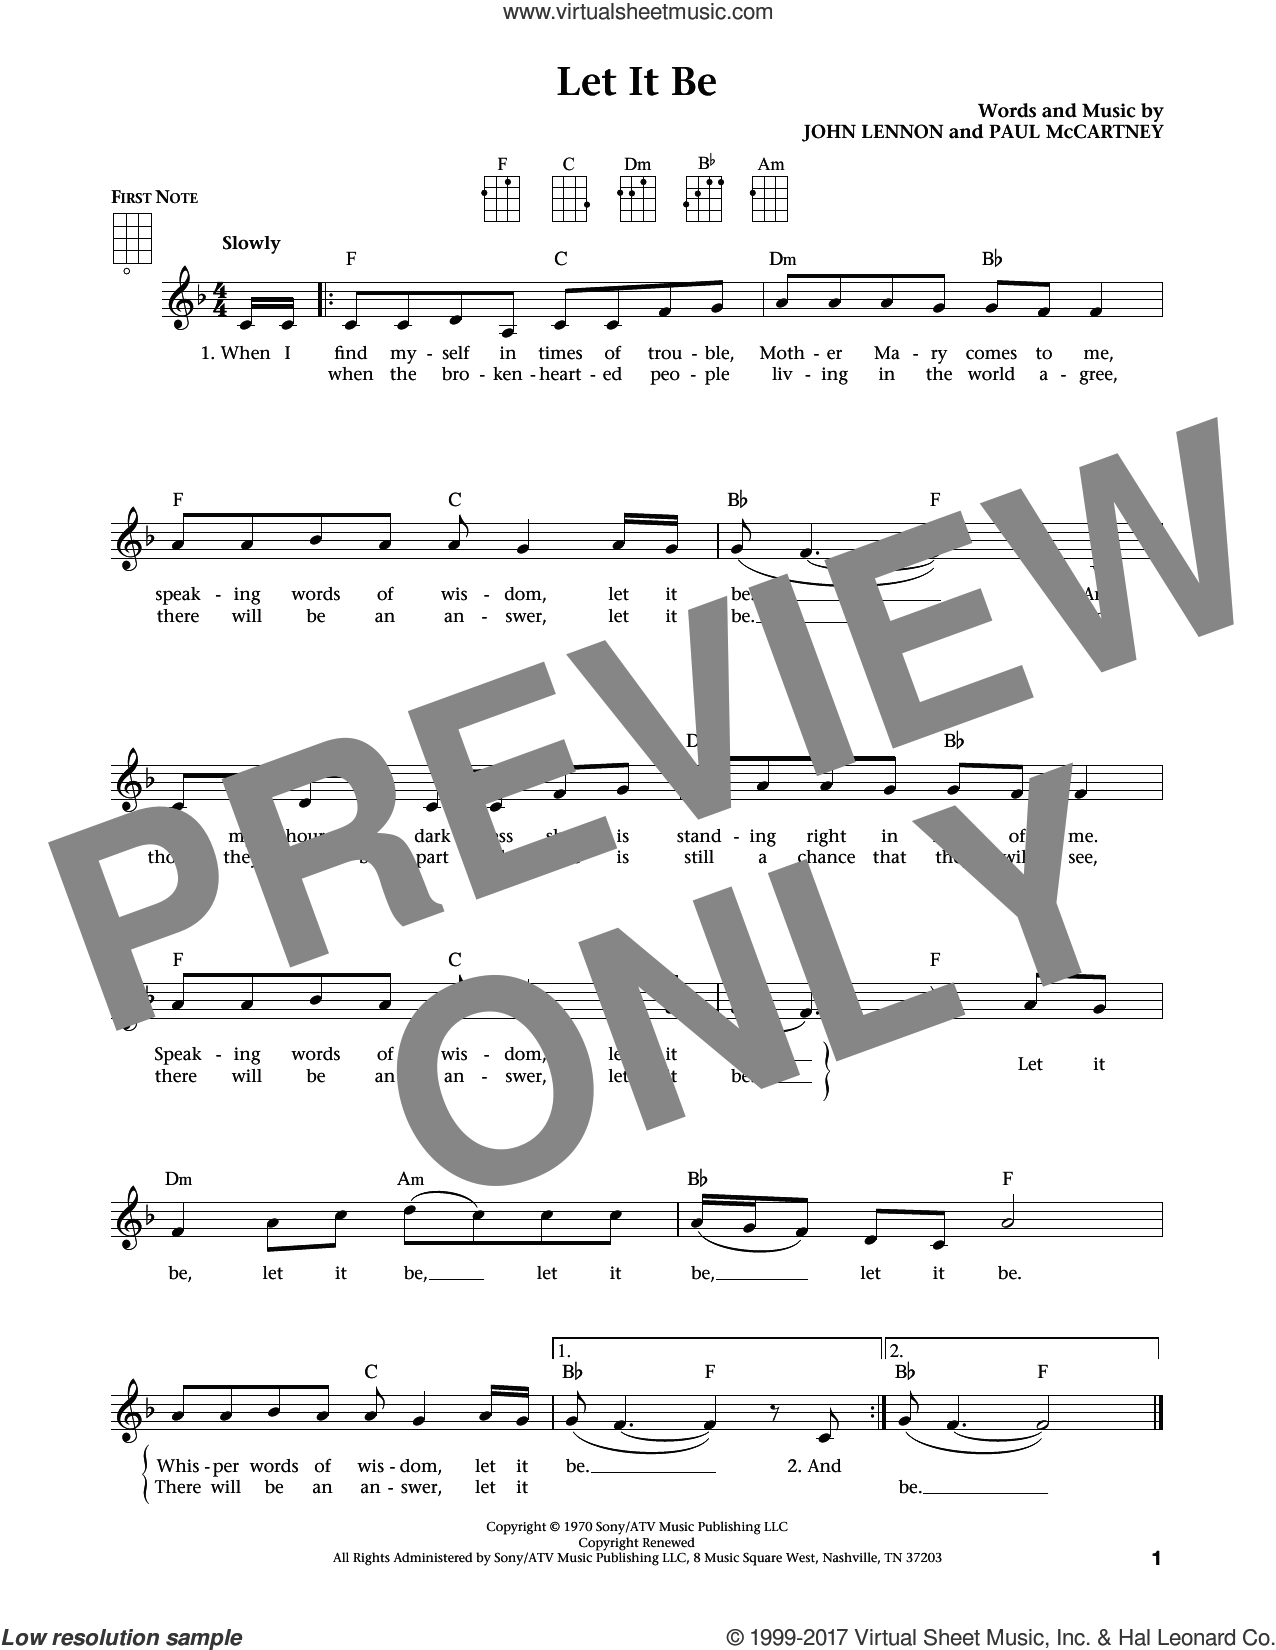 Let It Be (from The Daily Ukulele) (arr. Liz and Jim Beloff) sheet music for ukulele by The Beatles, Jim Beloff, Liz Beloff, John Lennon and Paul McCartney, intermediate skill level